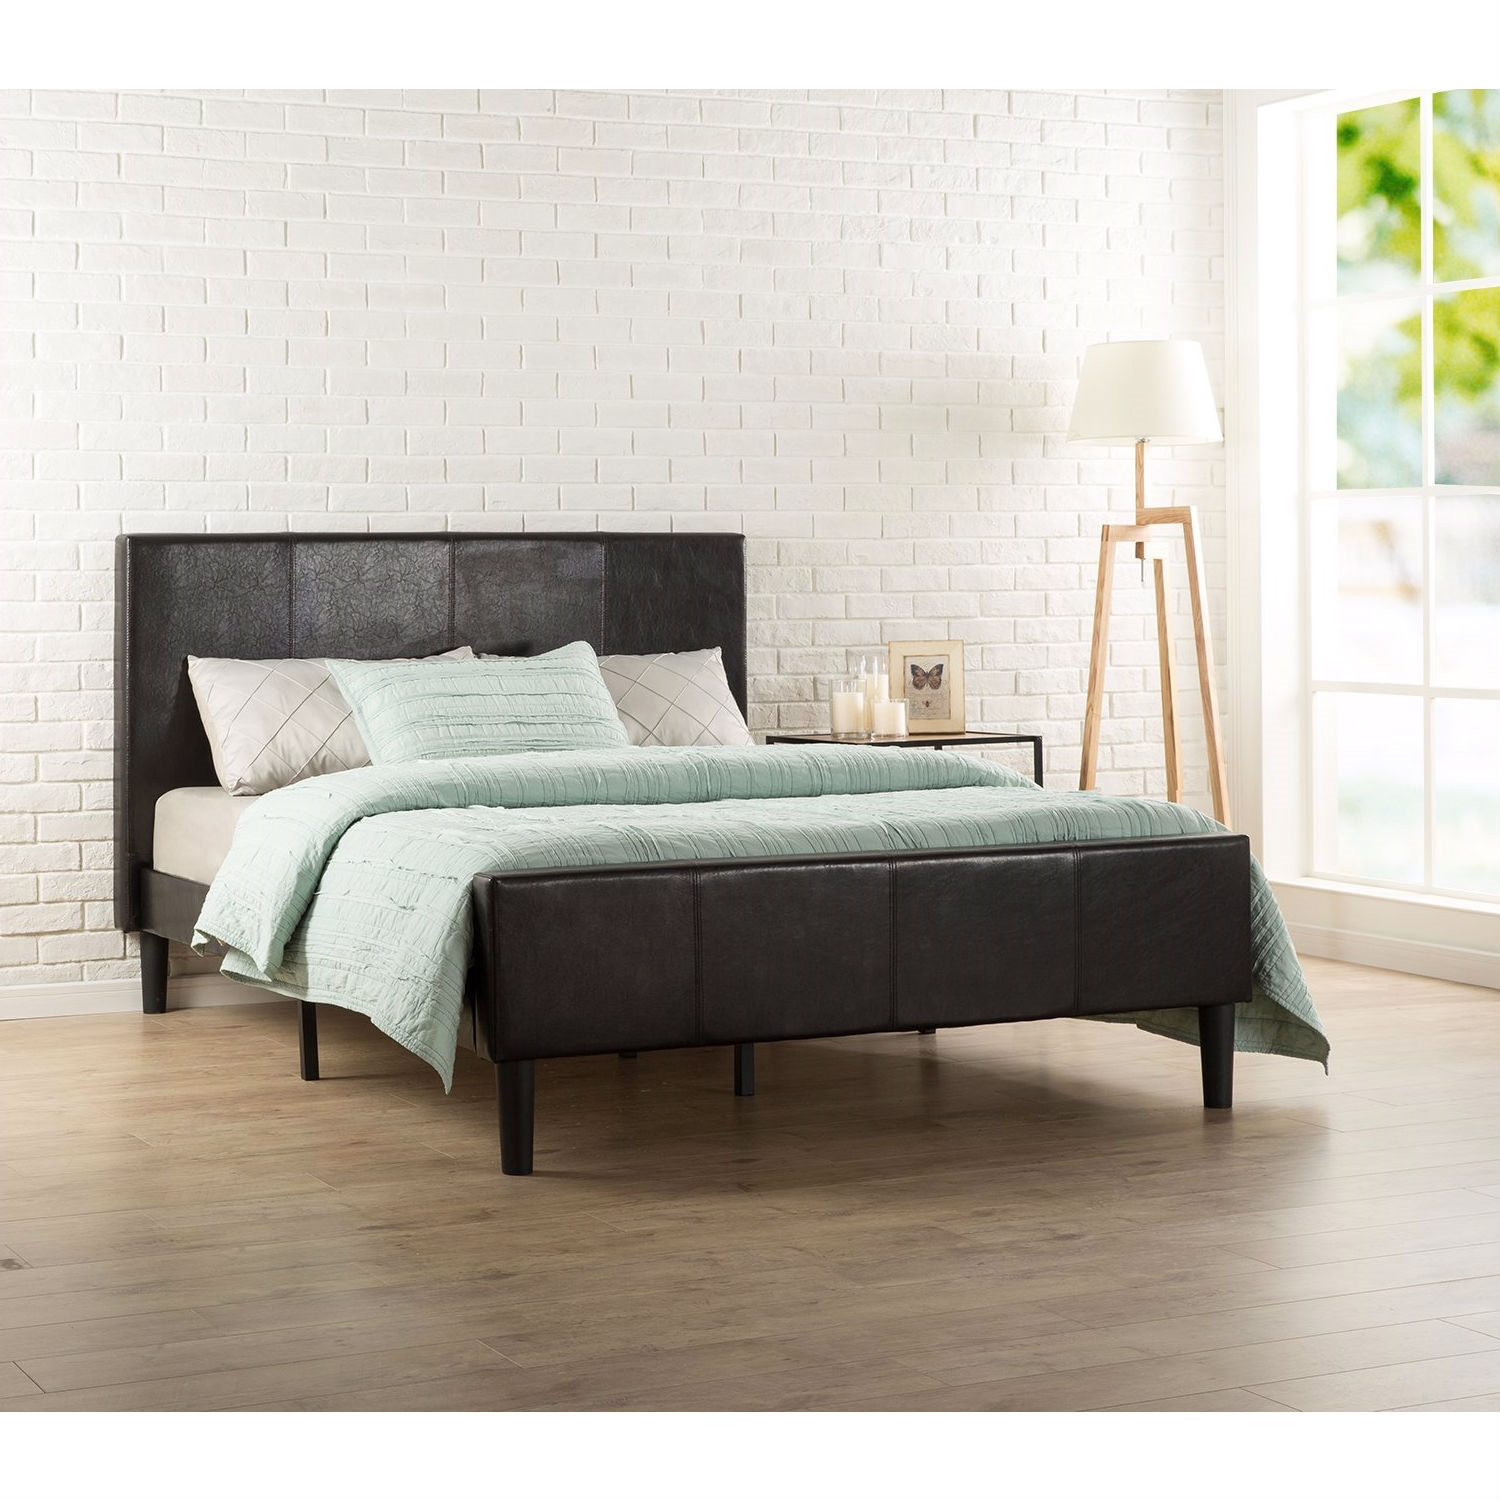 6a4616754c9a Queen size Espresso Faux Leather Platform Bed with Upholstered ...